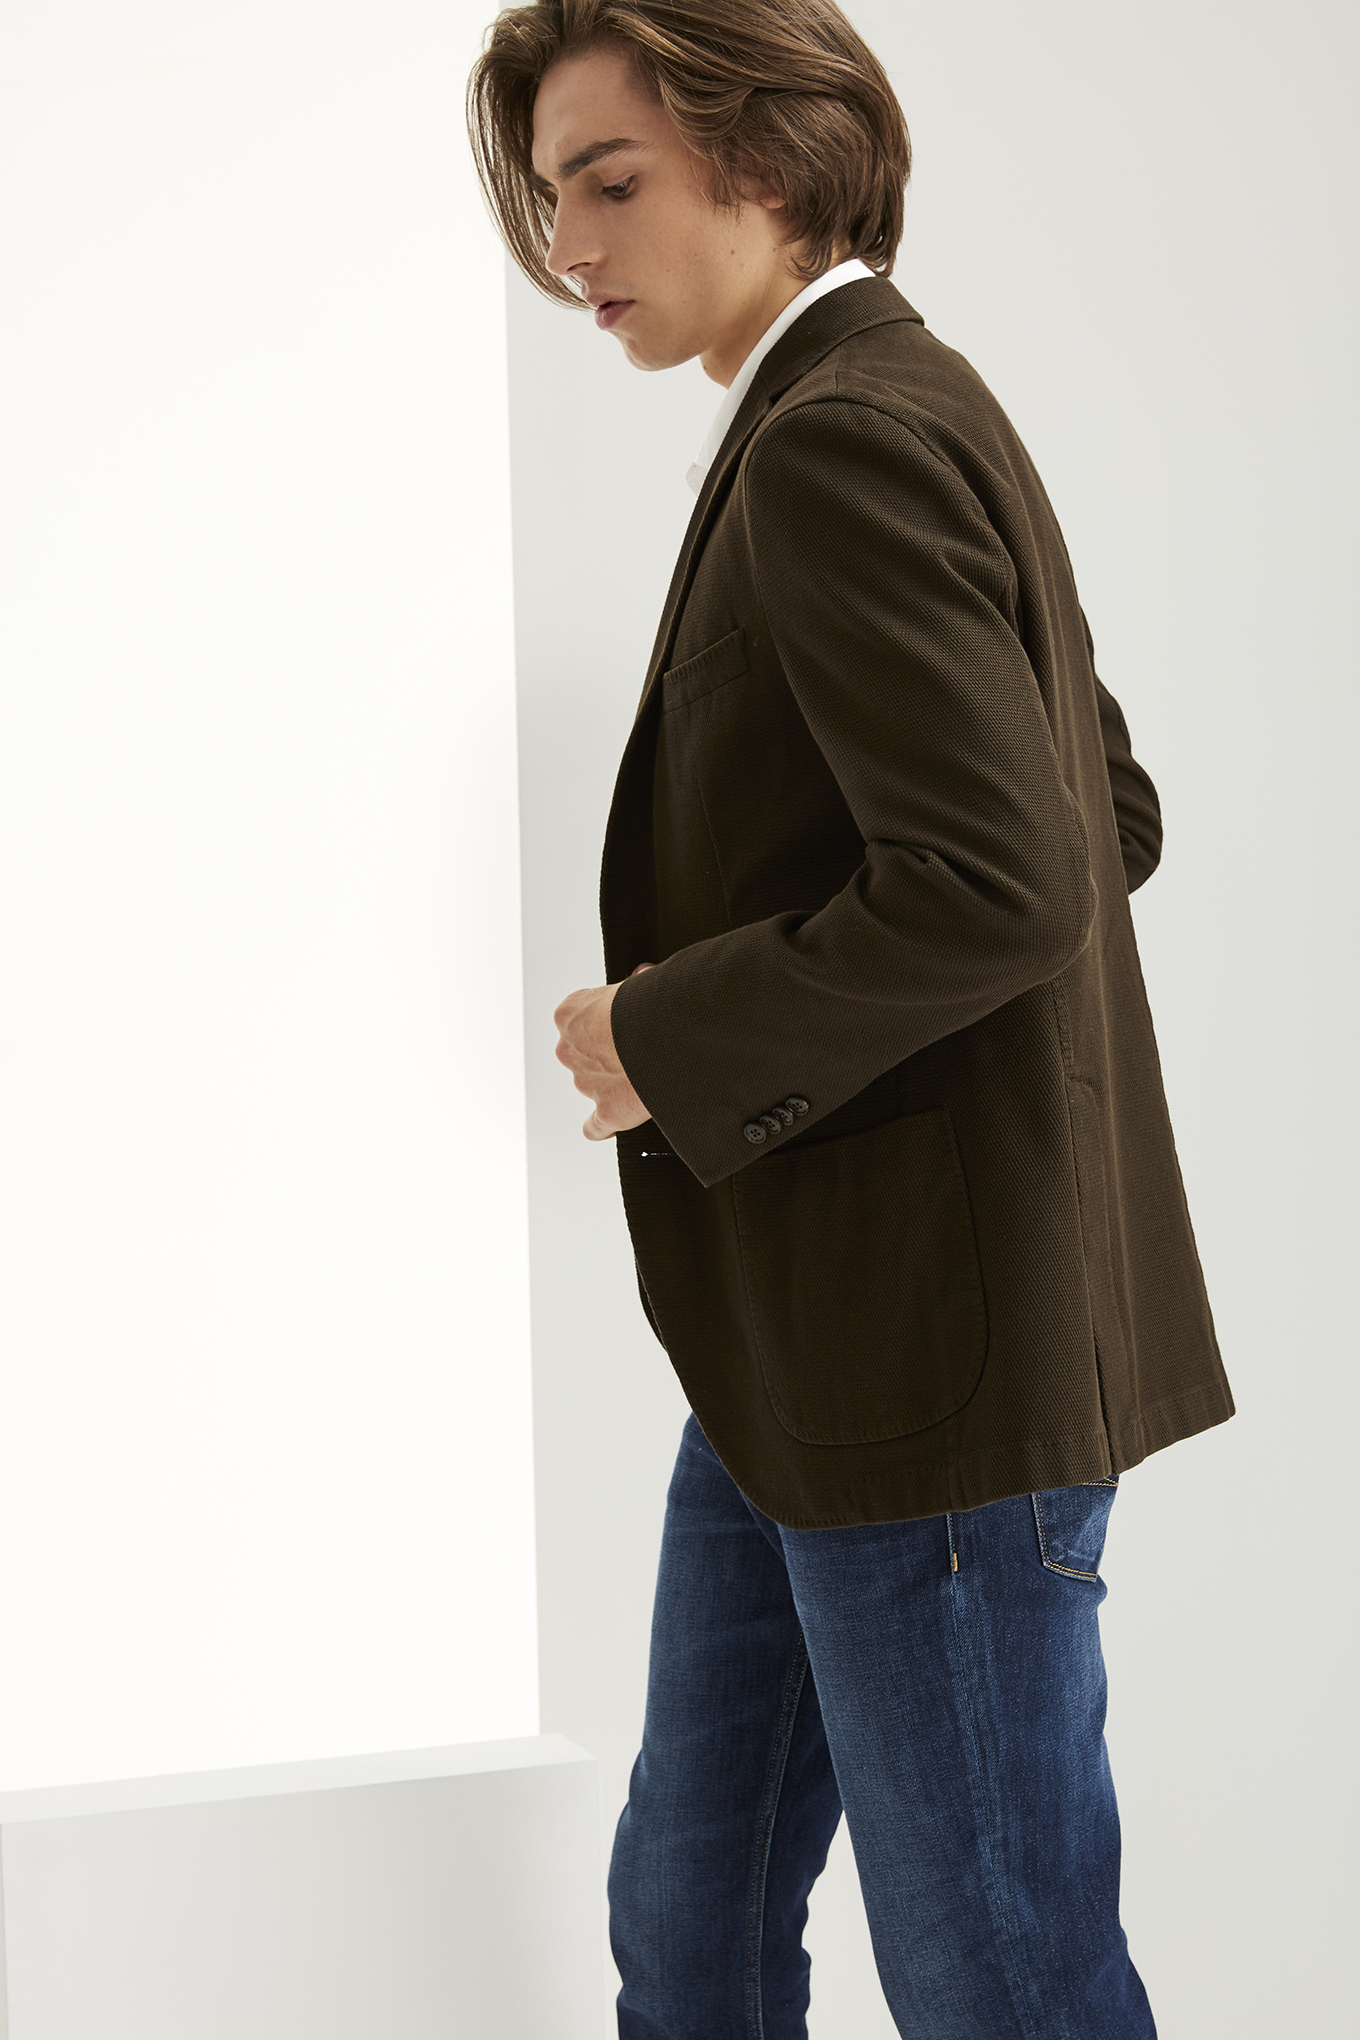 Blazer Chocolate Classic Man